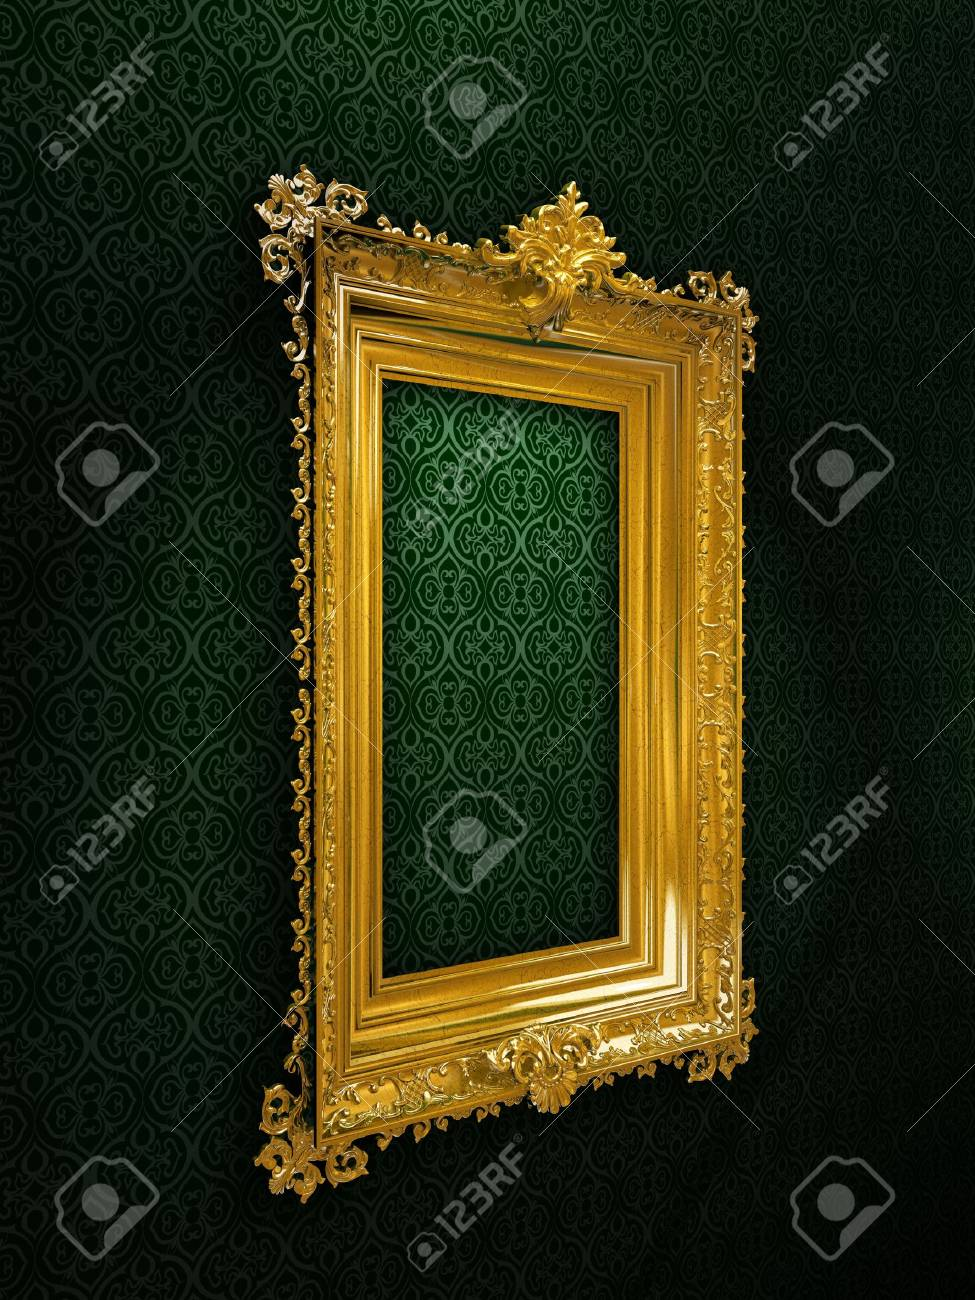 501cbb99395 Gold plated and richly decorated frame on a wall Stock Photo - 6341322